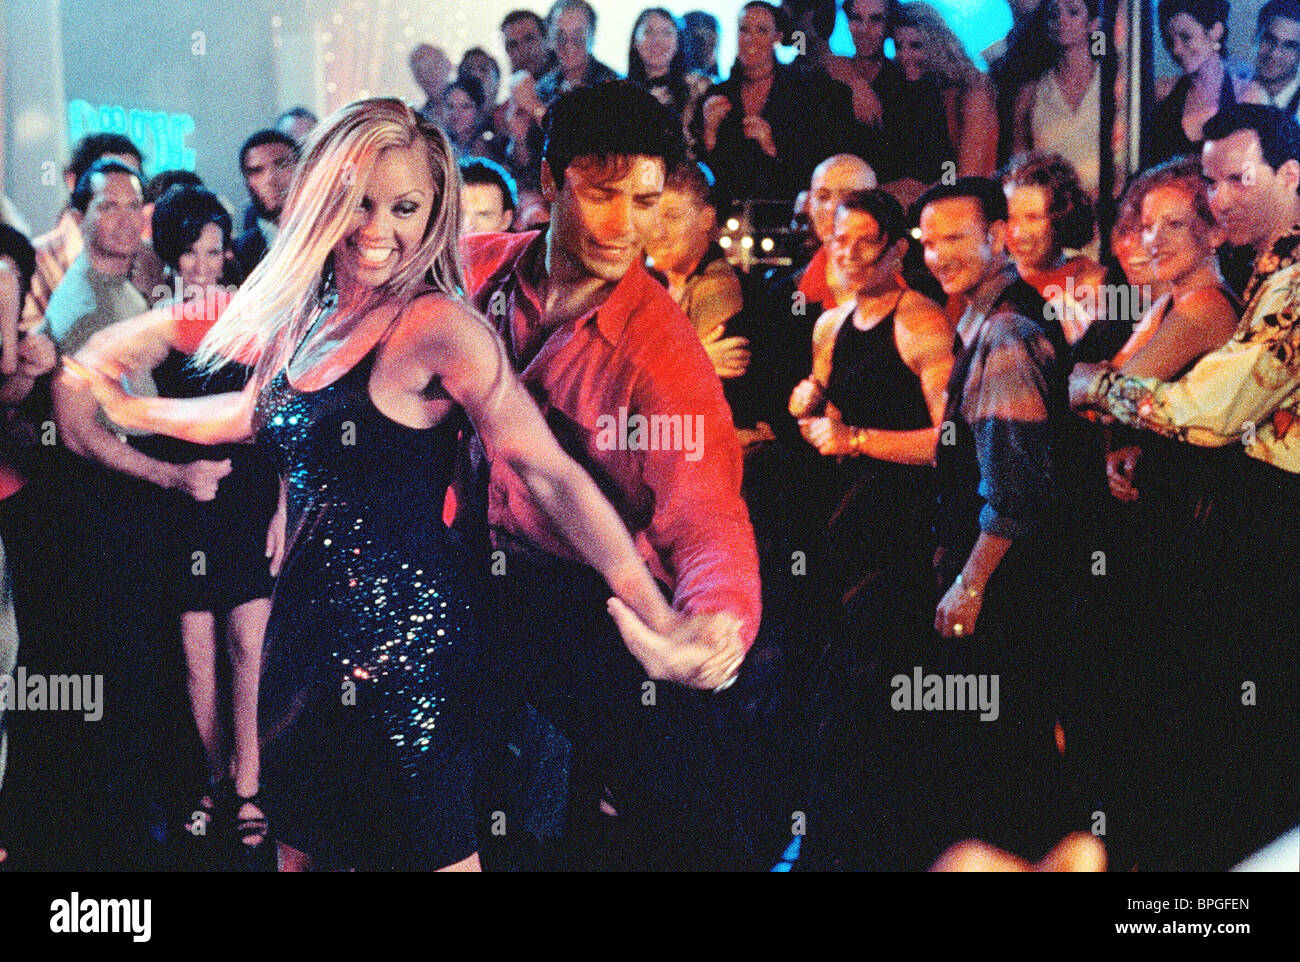 vanessa williams chayanne dance with me 1998 stock photo royalty free image 31096205 alamy. Black Bedroom Furniture Sets. Home Design Ideas